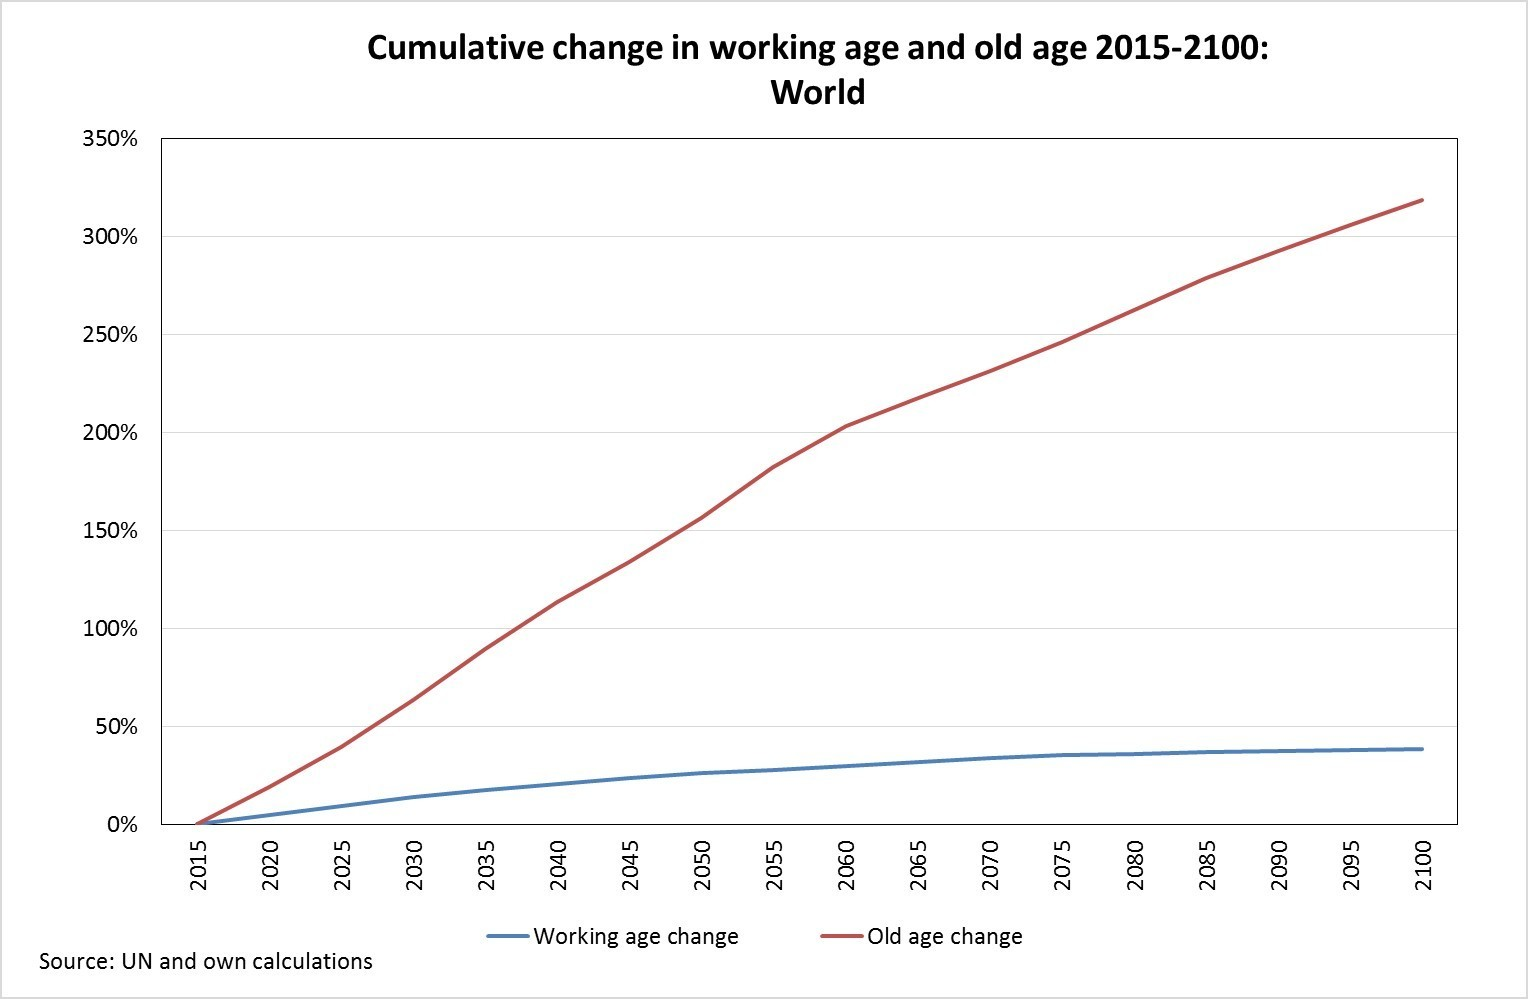 Cumulative increase working age and old age population 2015-2100